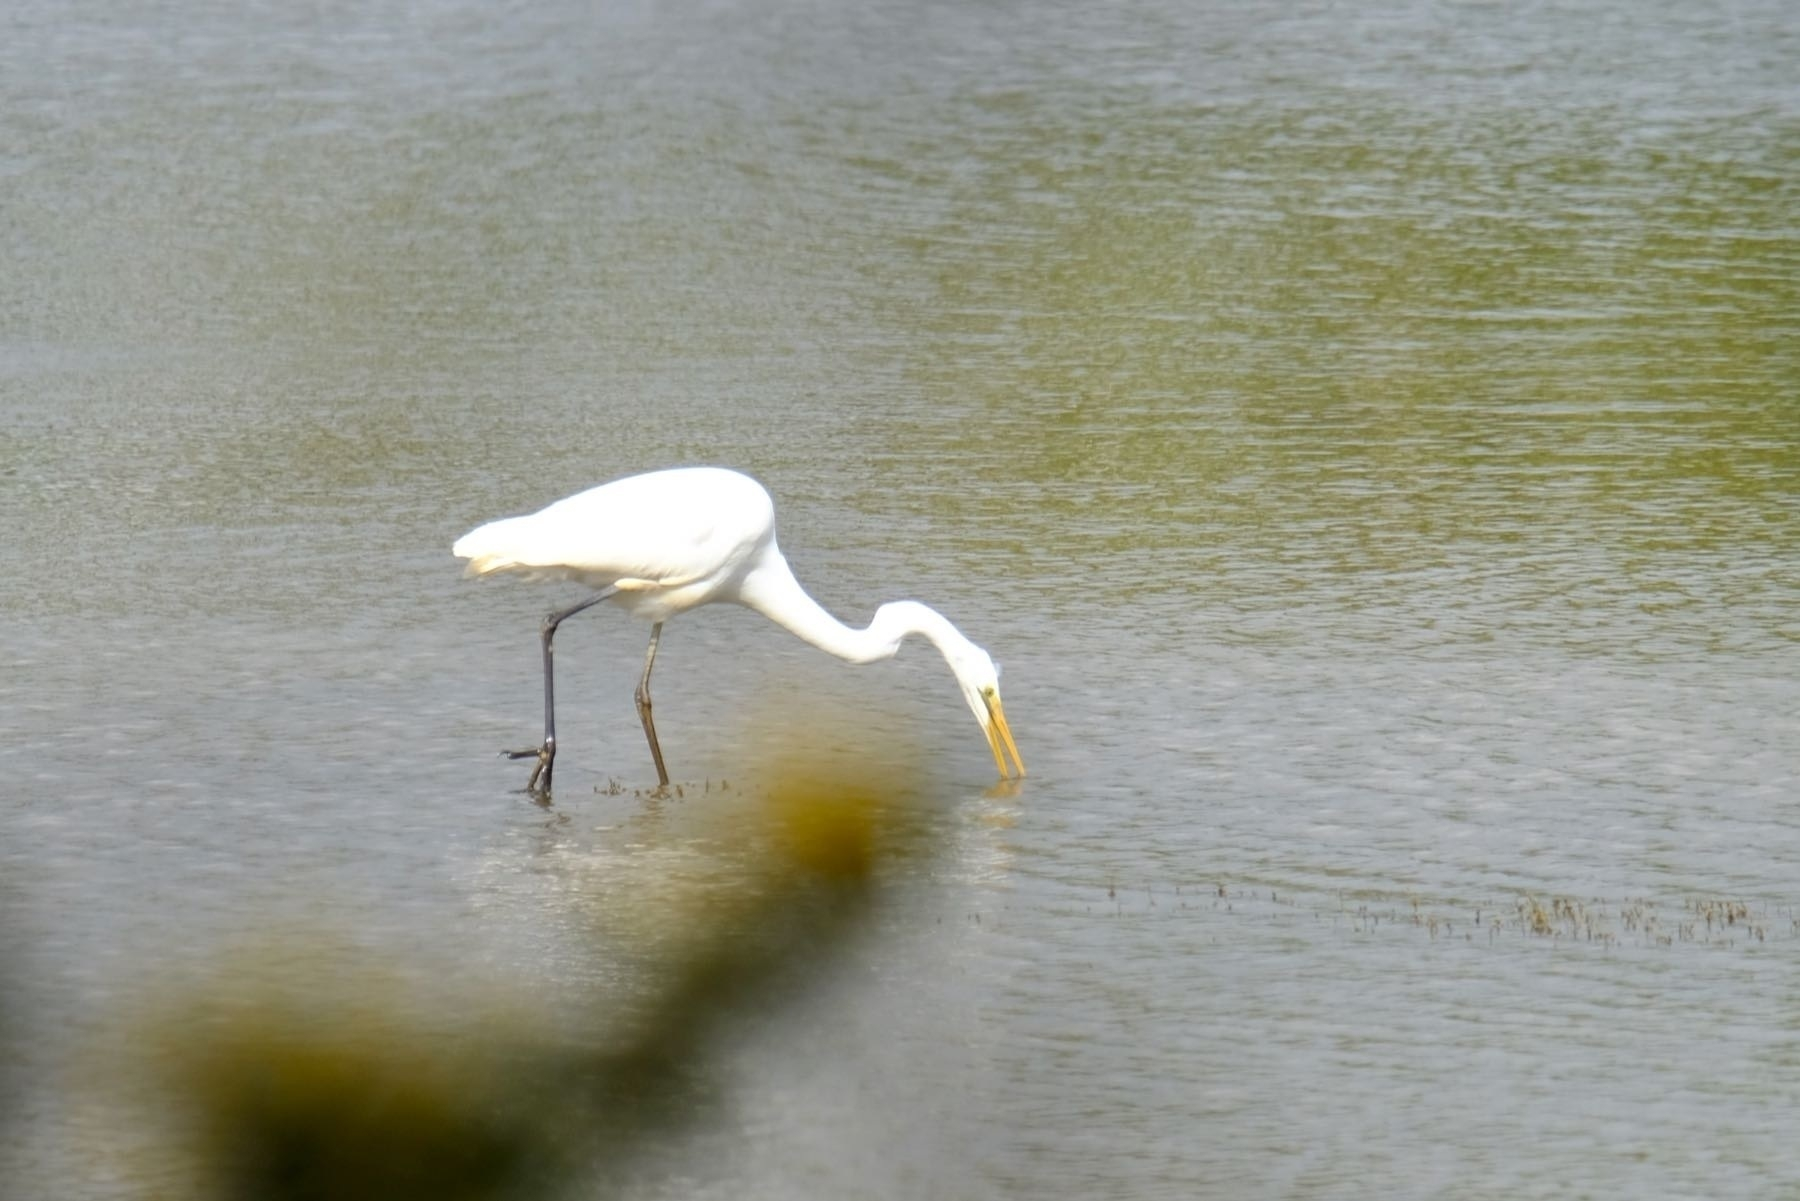 Large white bird wading and feeding in the river.